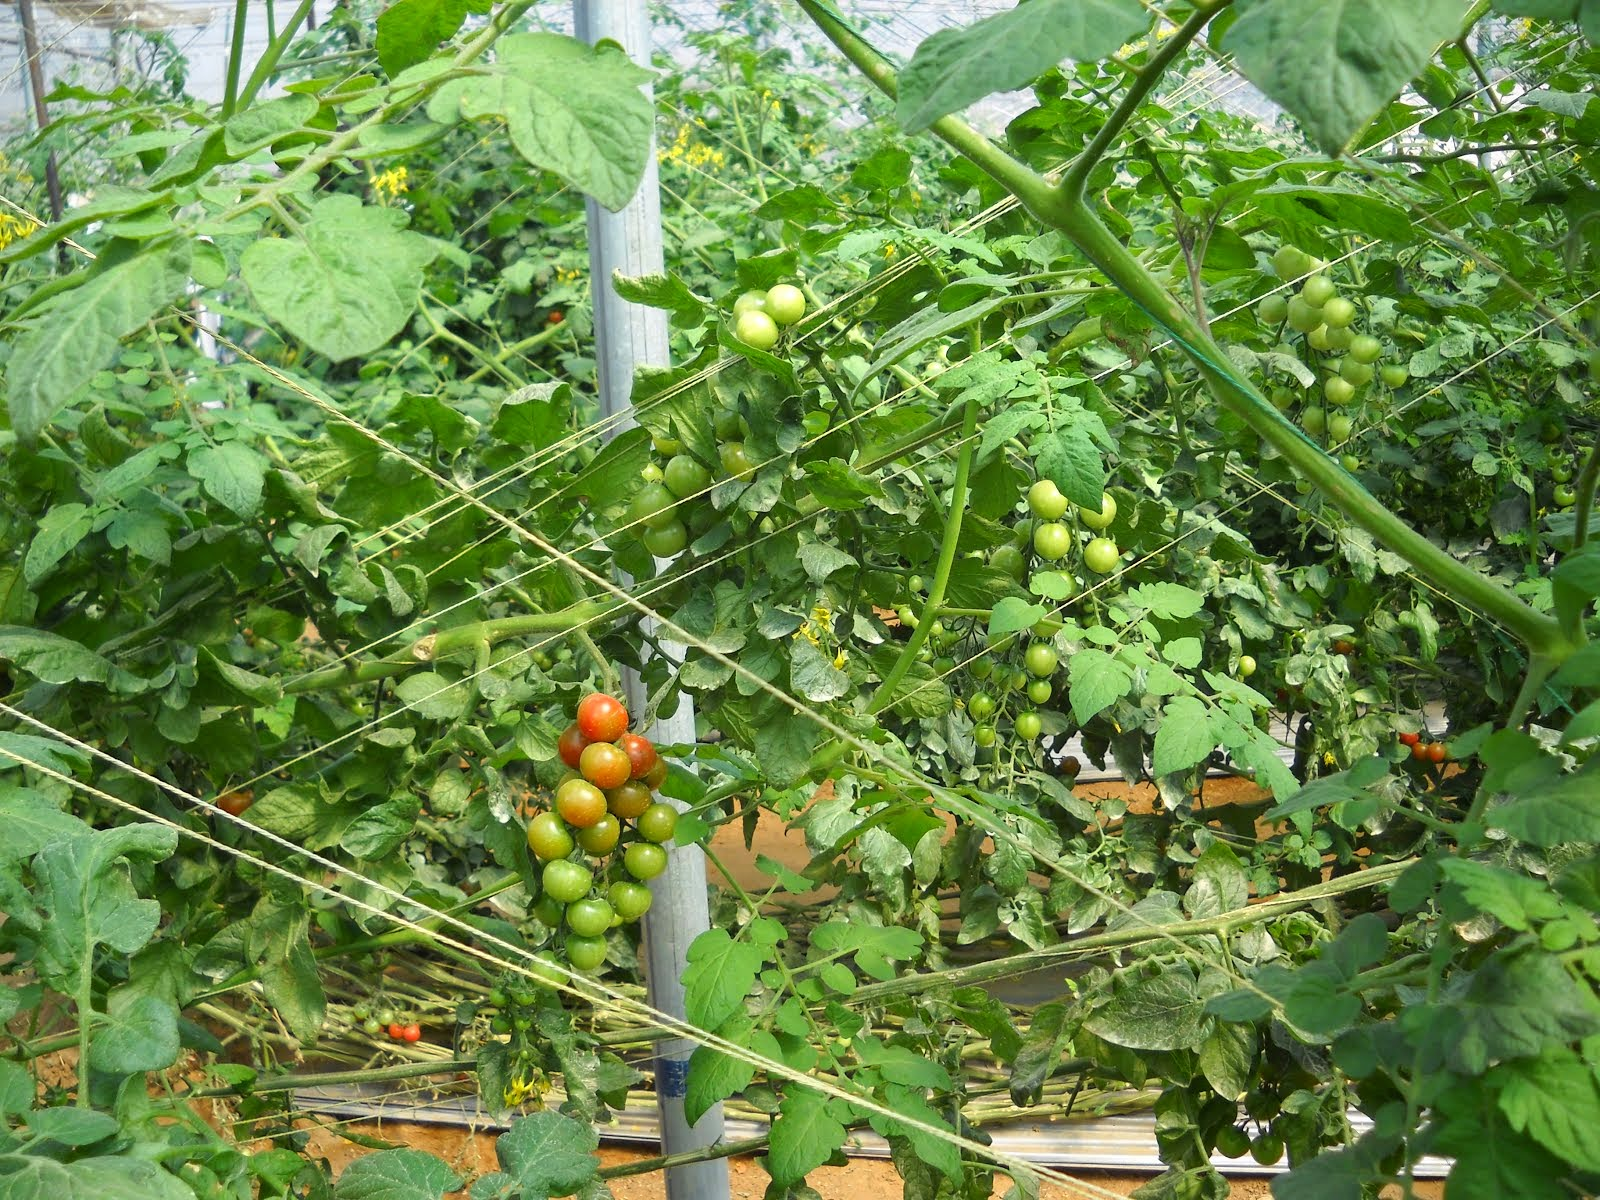 FILED BY GREEN HOUSE CHERE TOMATO